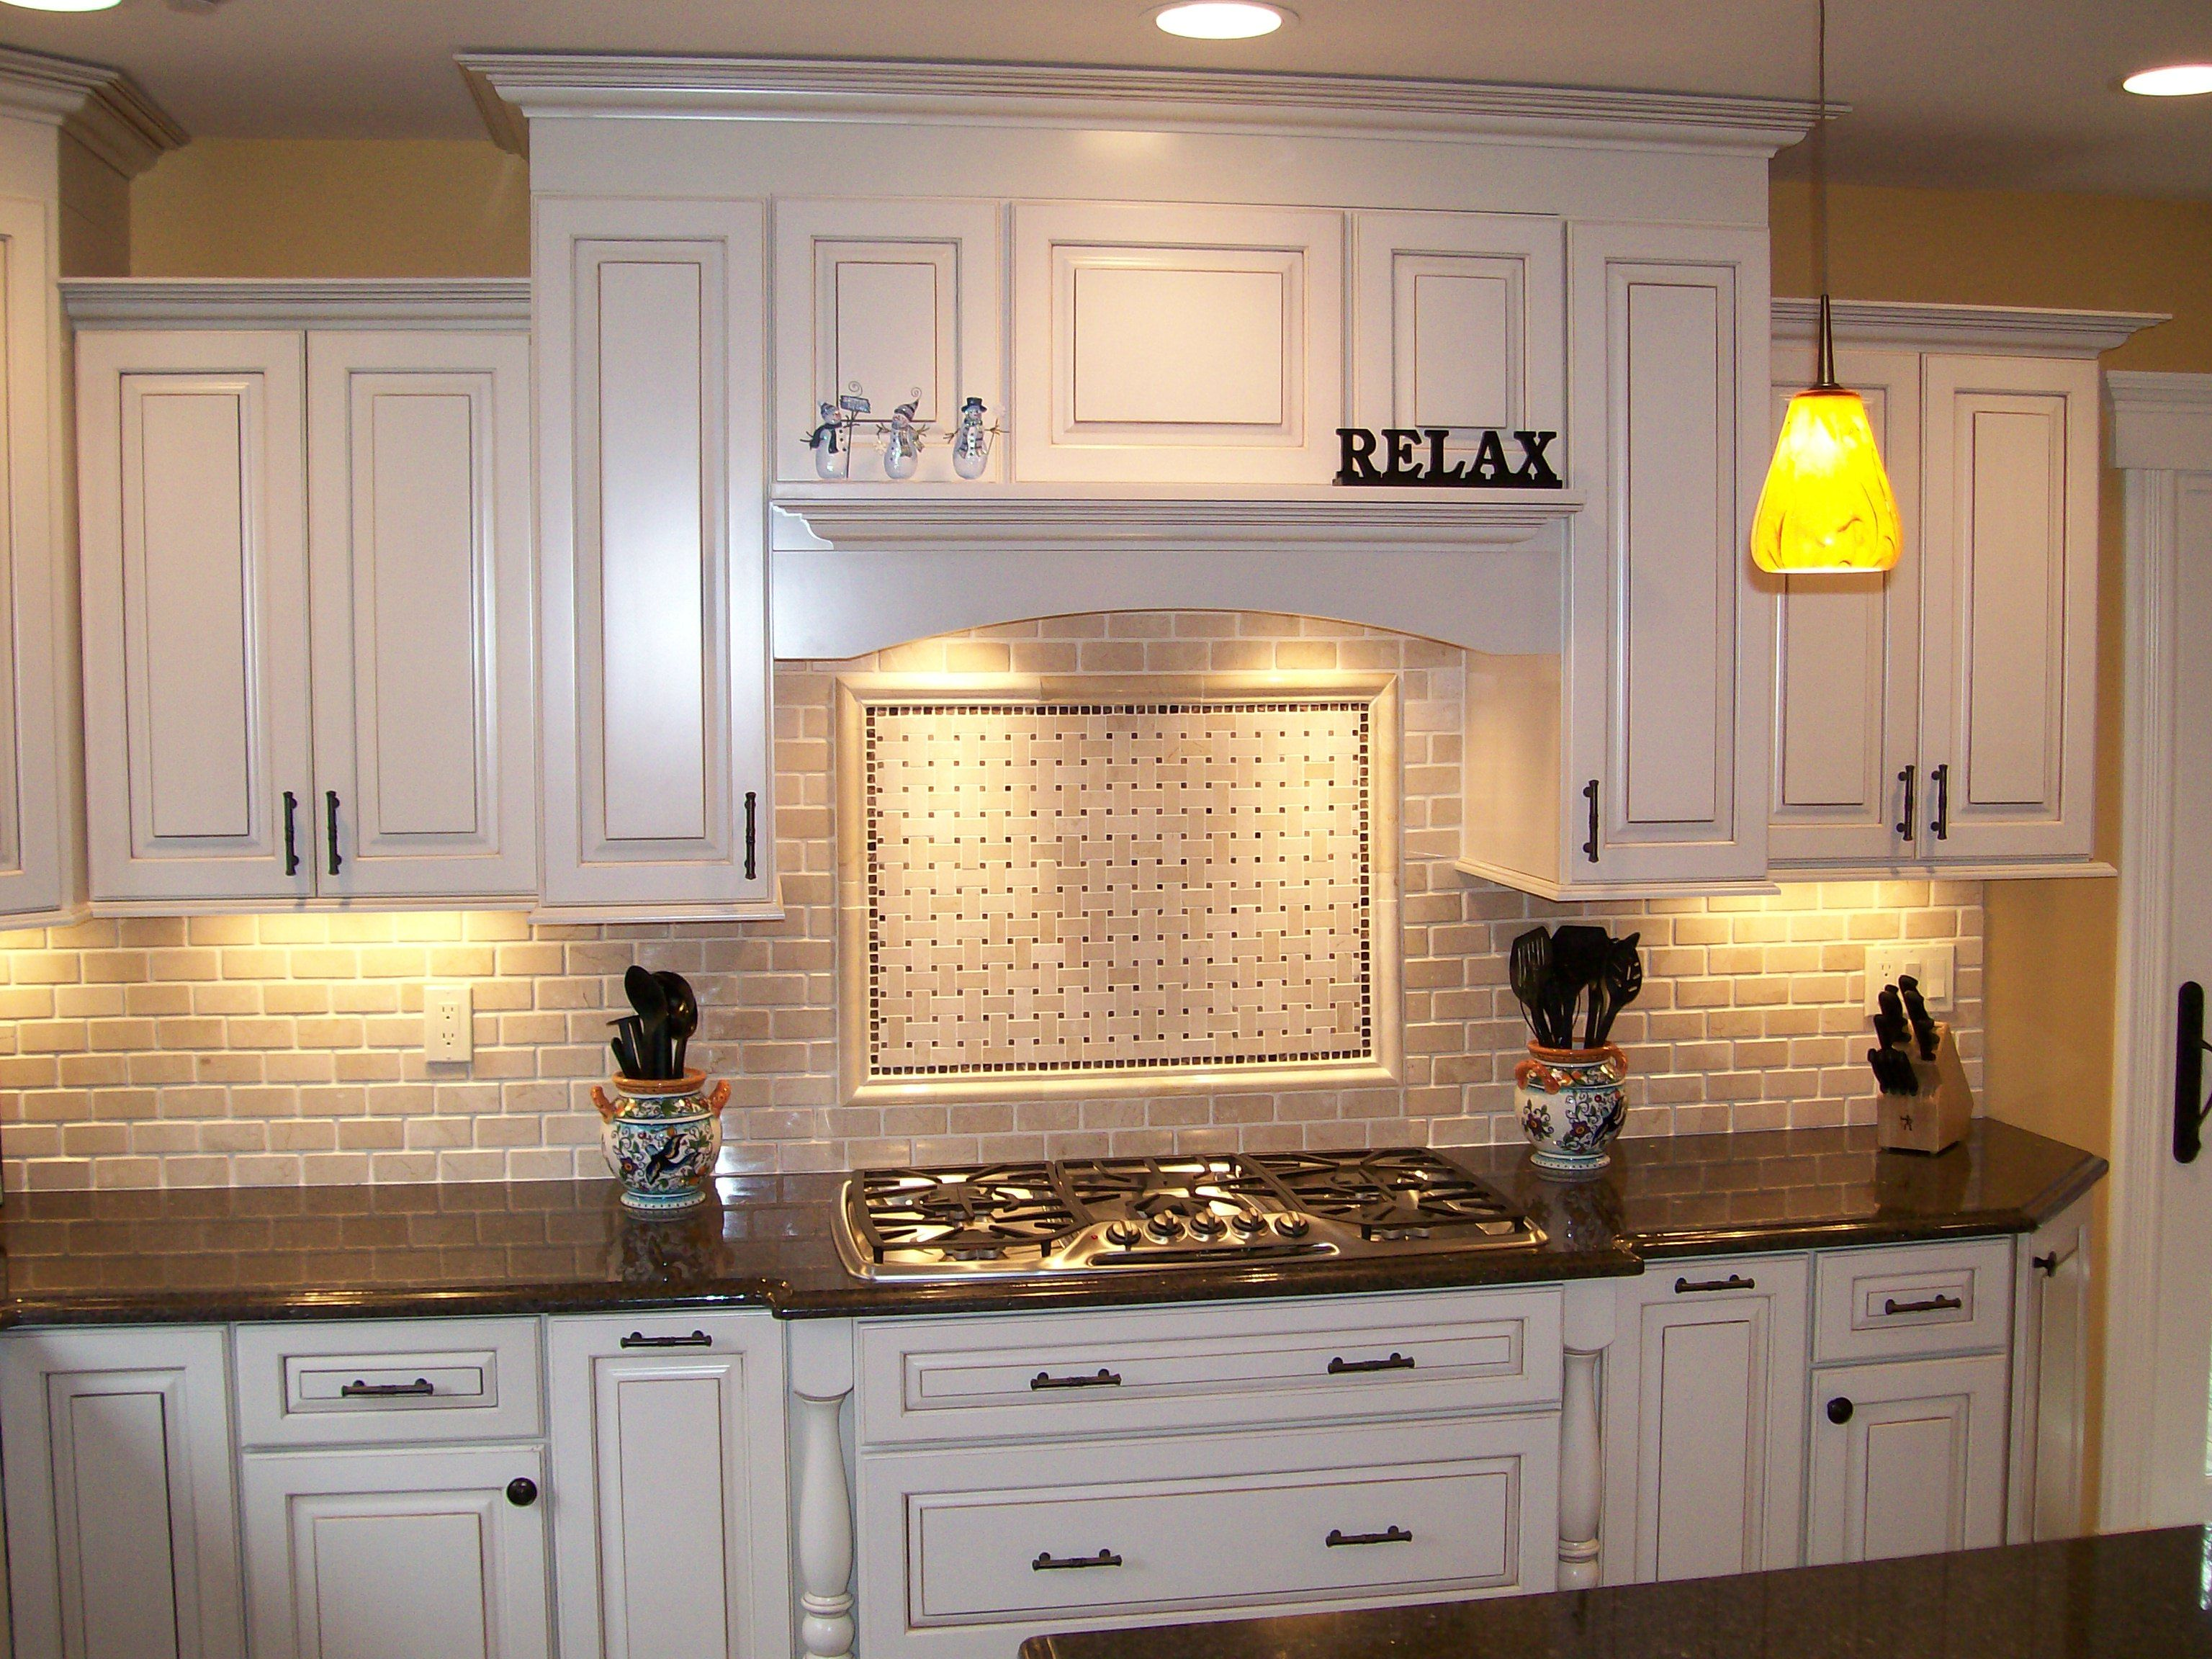 Kitchen, Nice Brick Backsplash In Kitchen With White Cabinet And ...